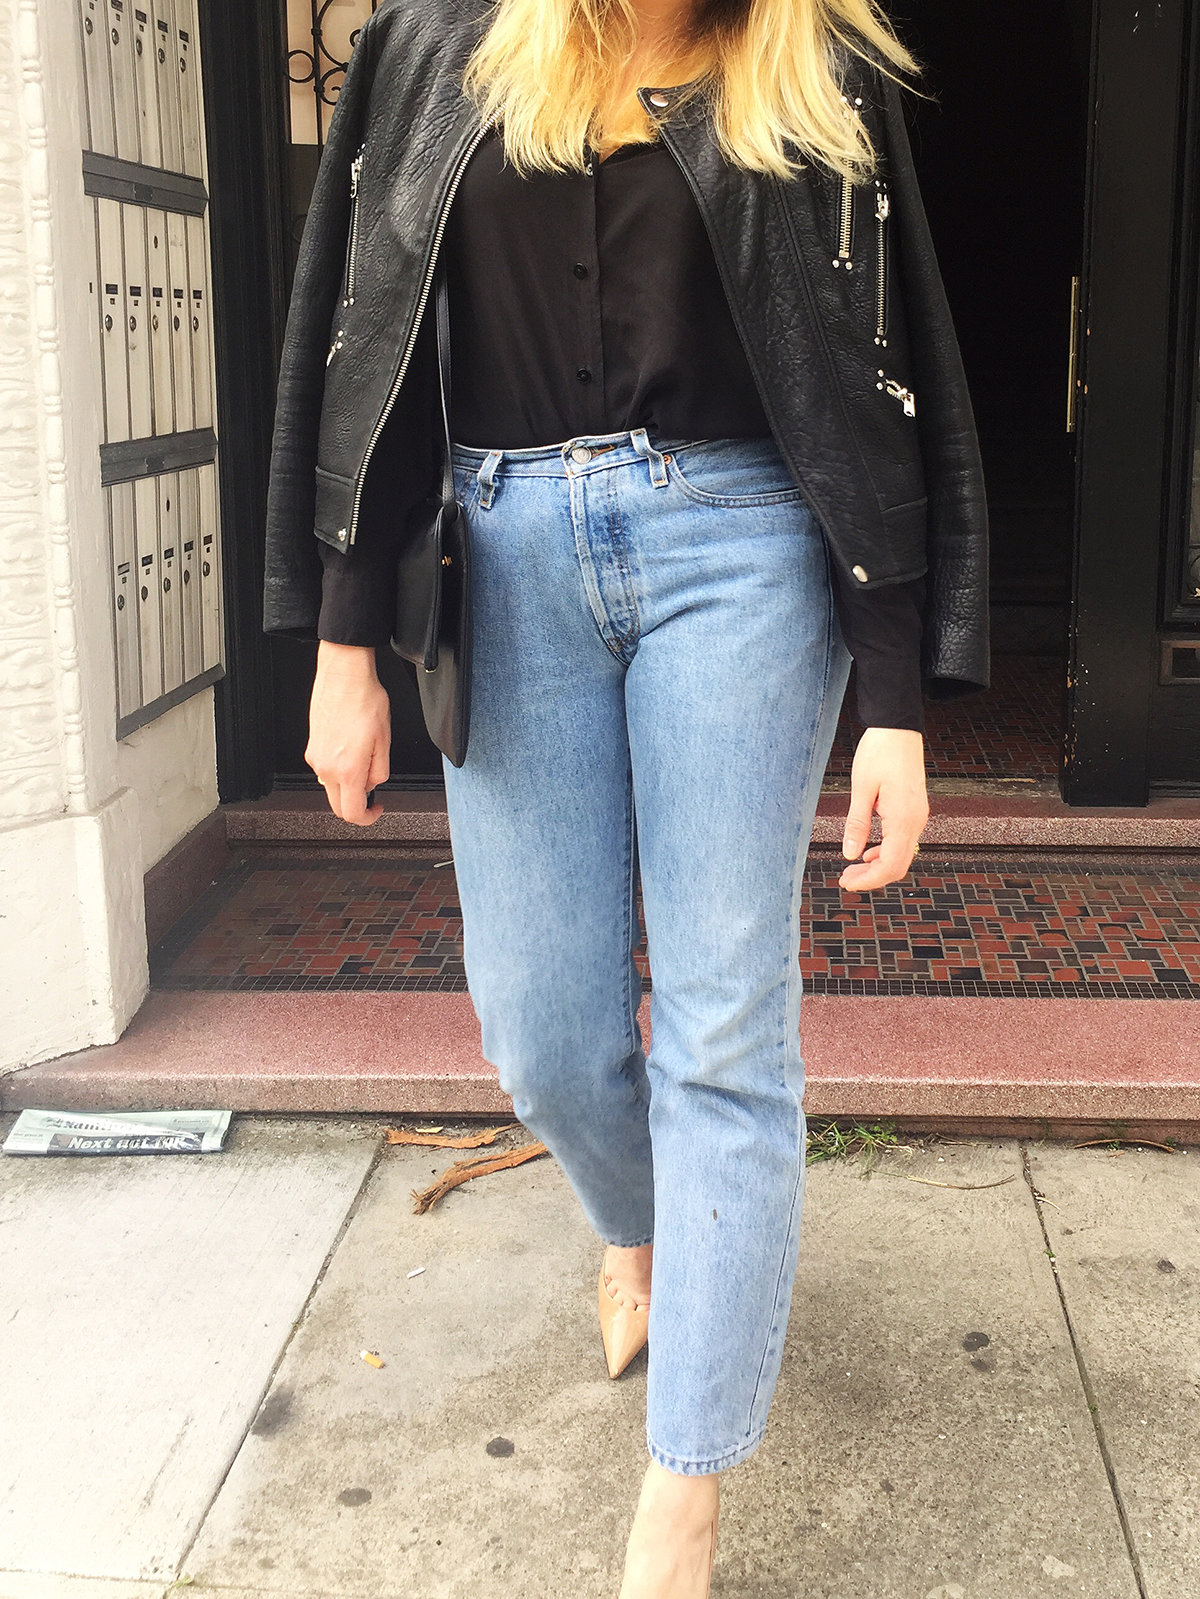 Levis, jeans, denim, vintage, how to, summer, spring, casual, every day, style, women, fashion, inspiration, style tips, simple, look good, three ways to wear, how to, Silk blouse, Black silk, blouse, leather, heels